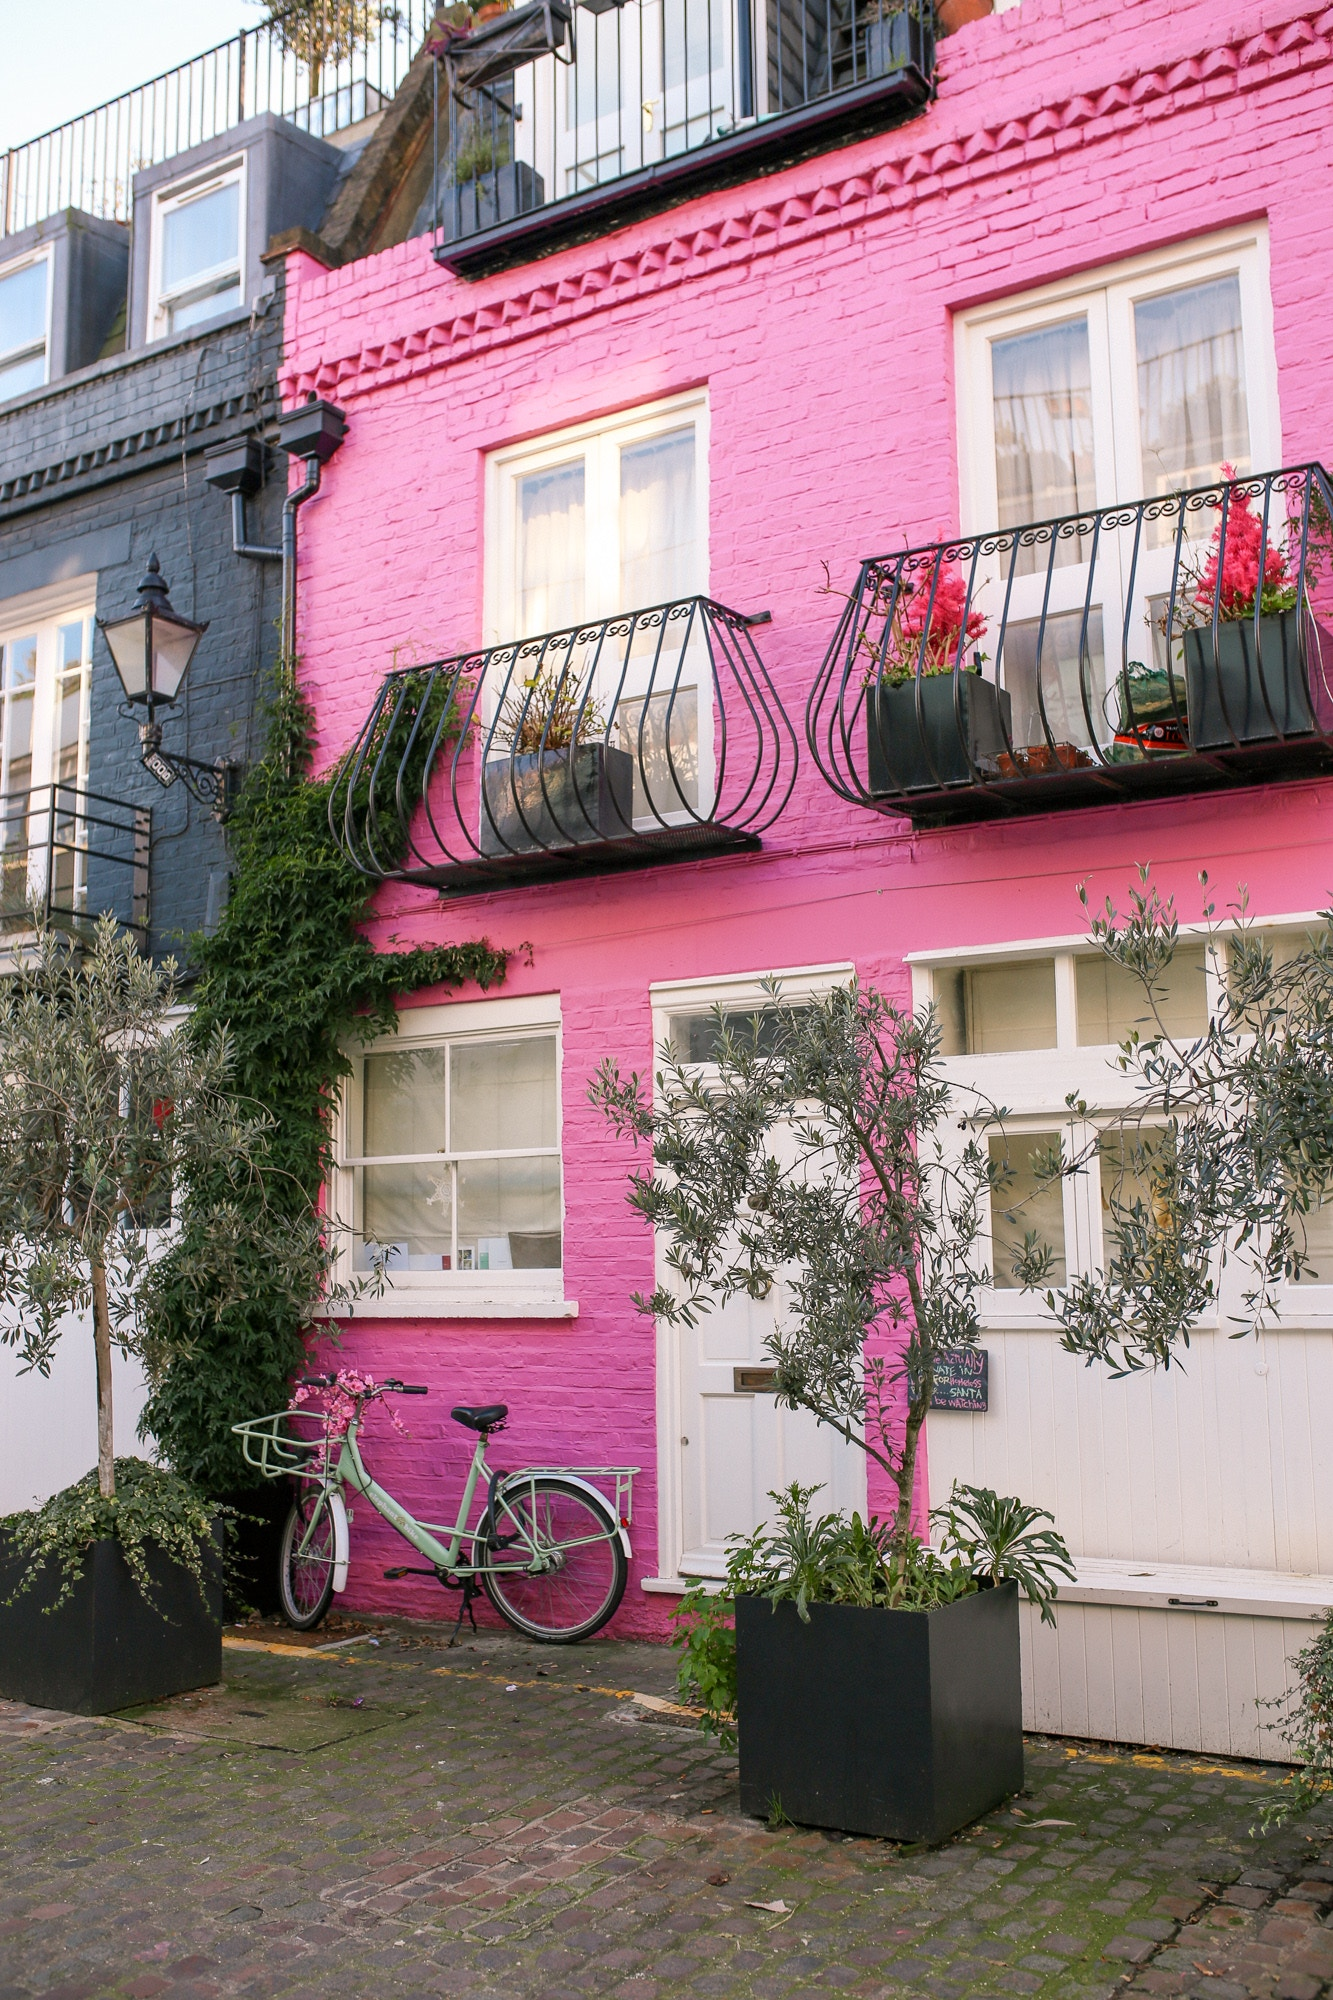 St. Luke's Mews - Love Actually Pink House in Notting Hill